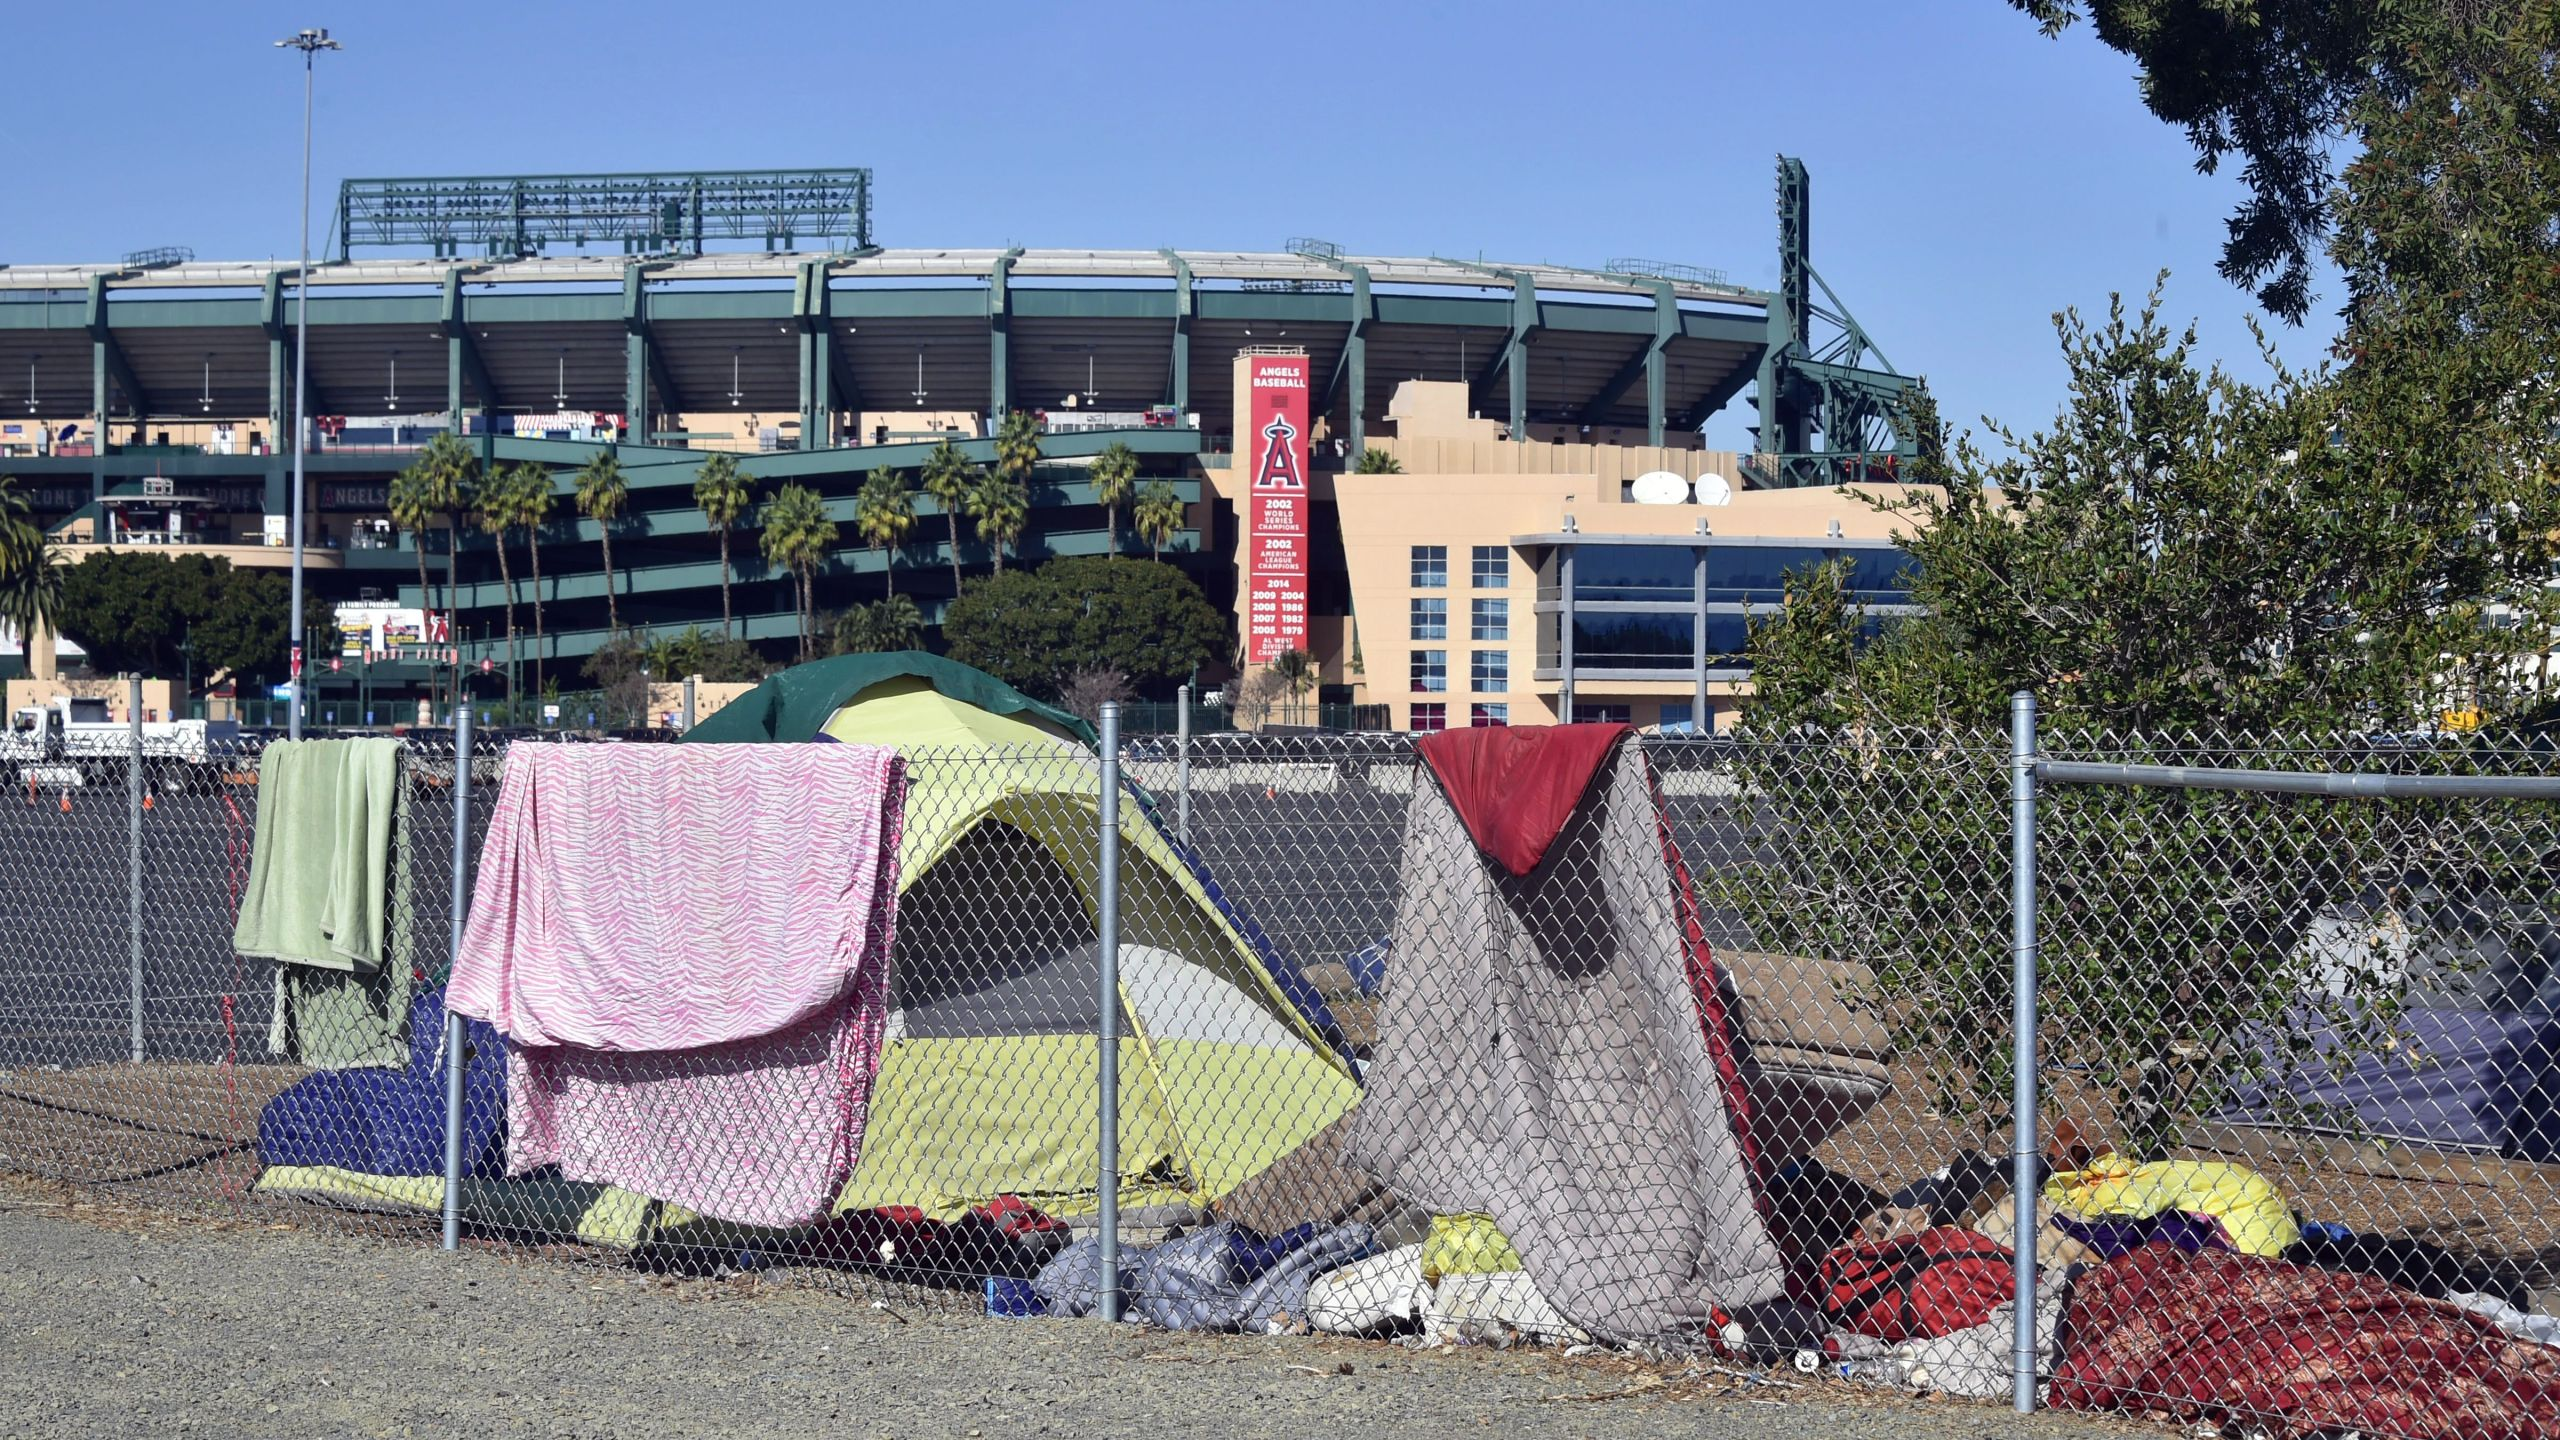 Blankets and tents are seen at a homeless encampment along the Santa Ana river bed near Angel Stadium in Anaheim, California on Jan. 23, 2018.(FREDERIC J. BROWN/AFP via Getty Images)